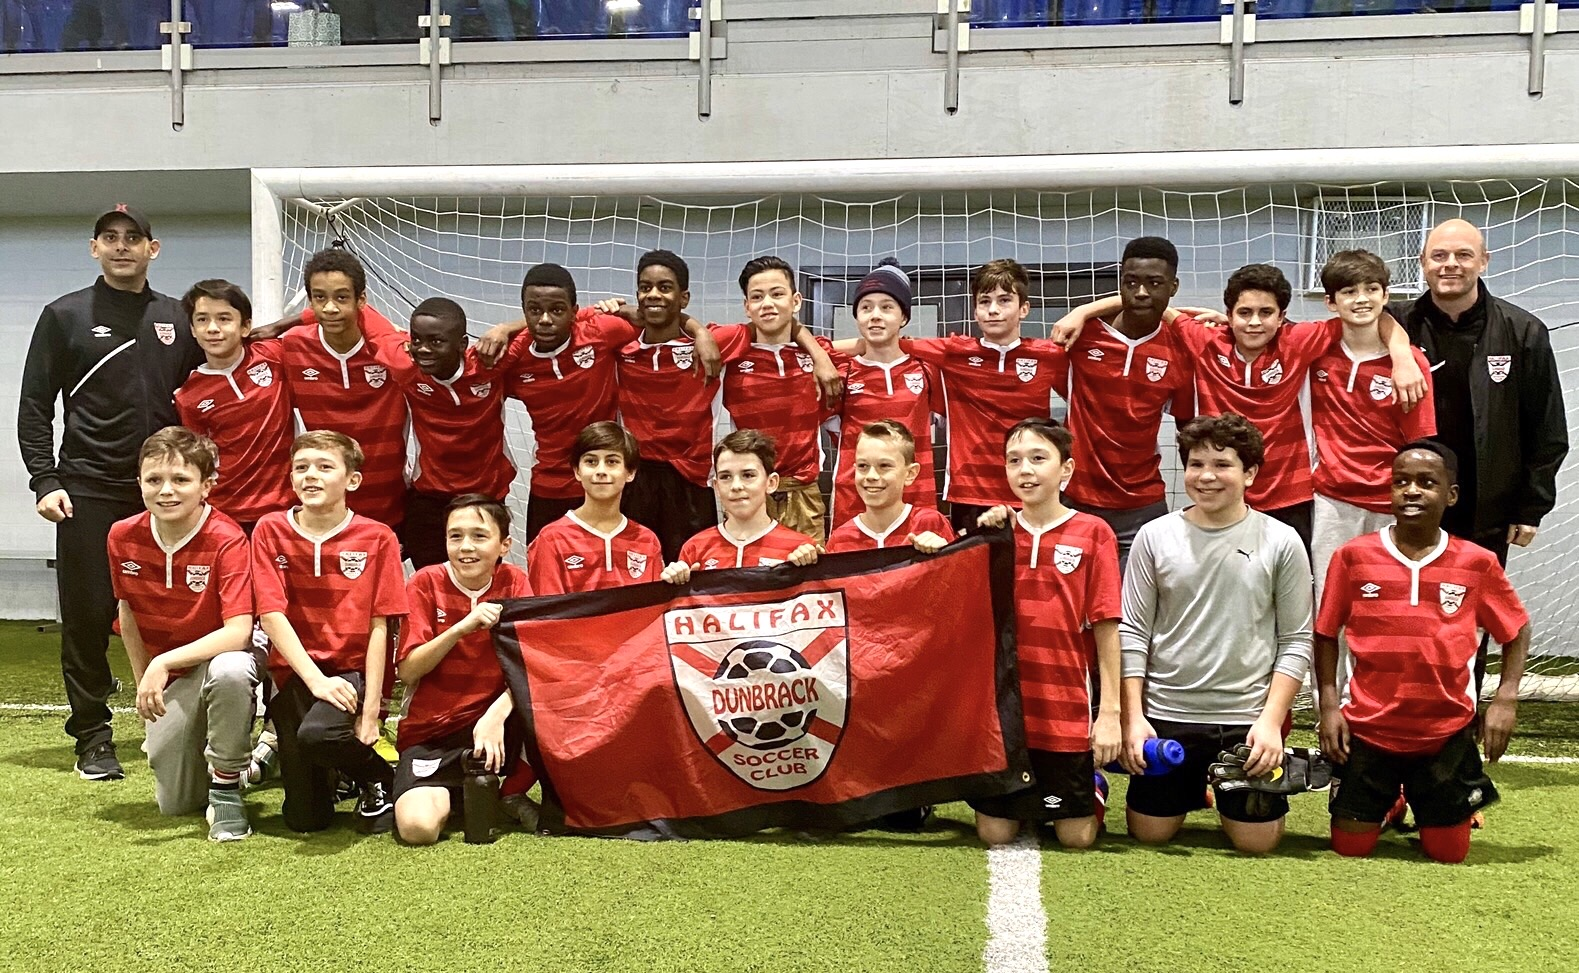 Congratulations to the Dunbrack U13AA Boys Red and Black Teams!